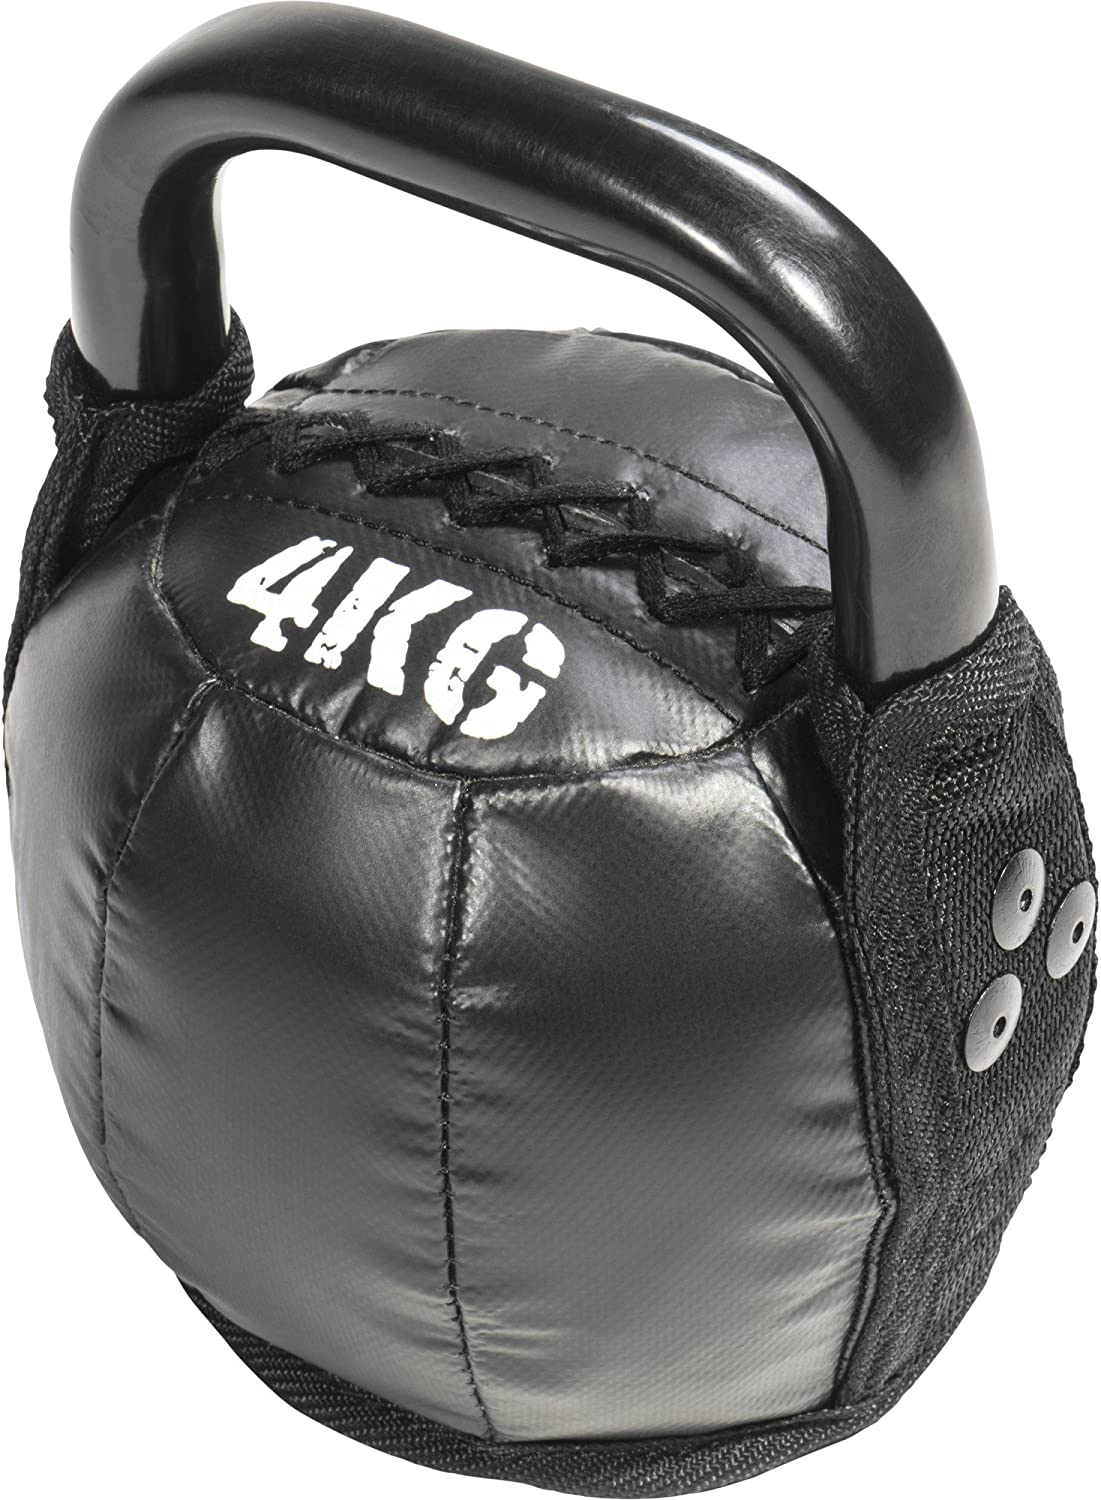 Gorilla Sports Hand Weight Kettlebell Swing Leather Dumbbell Weights 10/kg with Weight specification